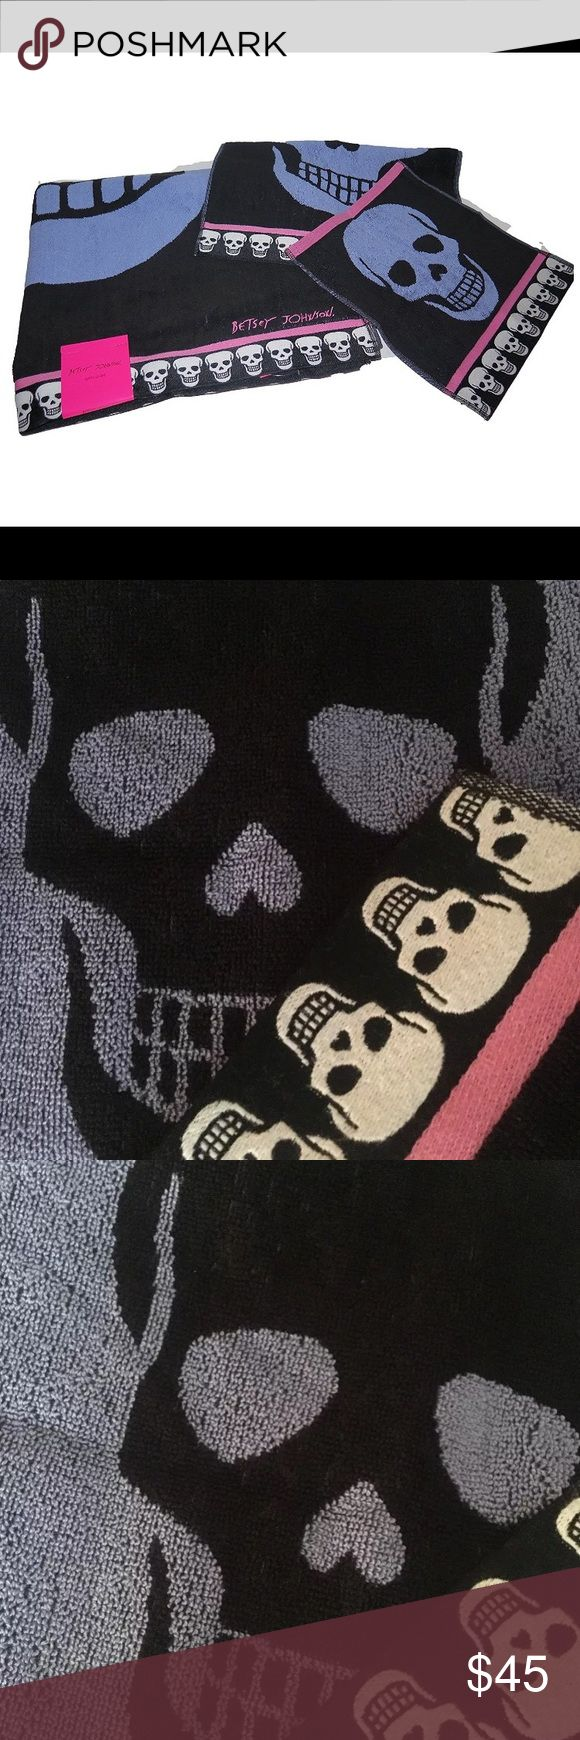 "Betsey Johnson Skull Bath towel purple Halloween Betsey Johnson mega skull bath towels. Black Pink purple reversible bath towel set. 3 pieces includes 1 extra large bath towel 1 hand towel and 1 wash/ face towel. Betsey Johnson skull skeleton. (1) Bath Sheet Towel 34"" x 64"" (1) Hand Towel 16"" x 28"" (1) Wash Cloth 13"" x 13"" 100% Cotton Machine Wash/Tumble Dry Betsey Johnson Accessories"